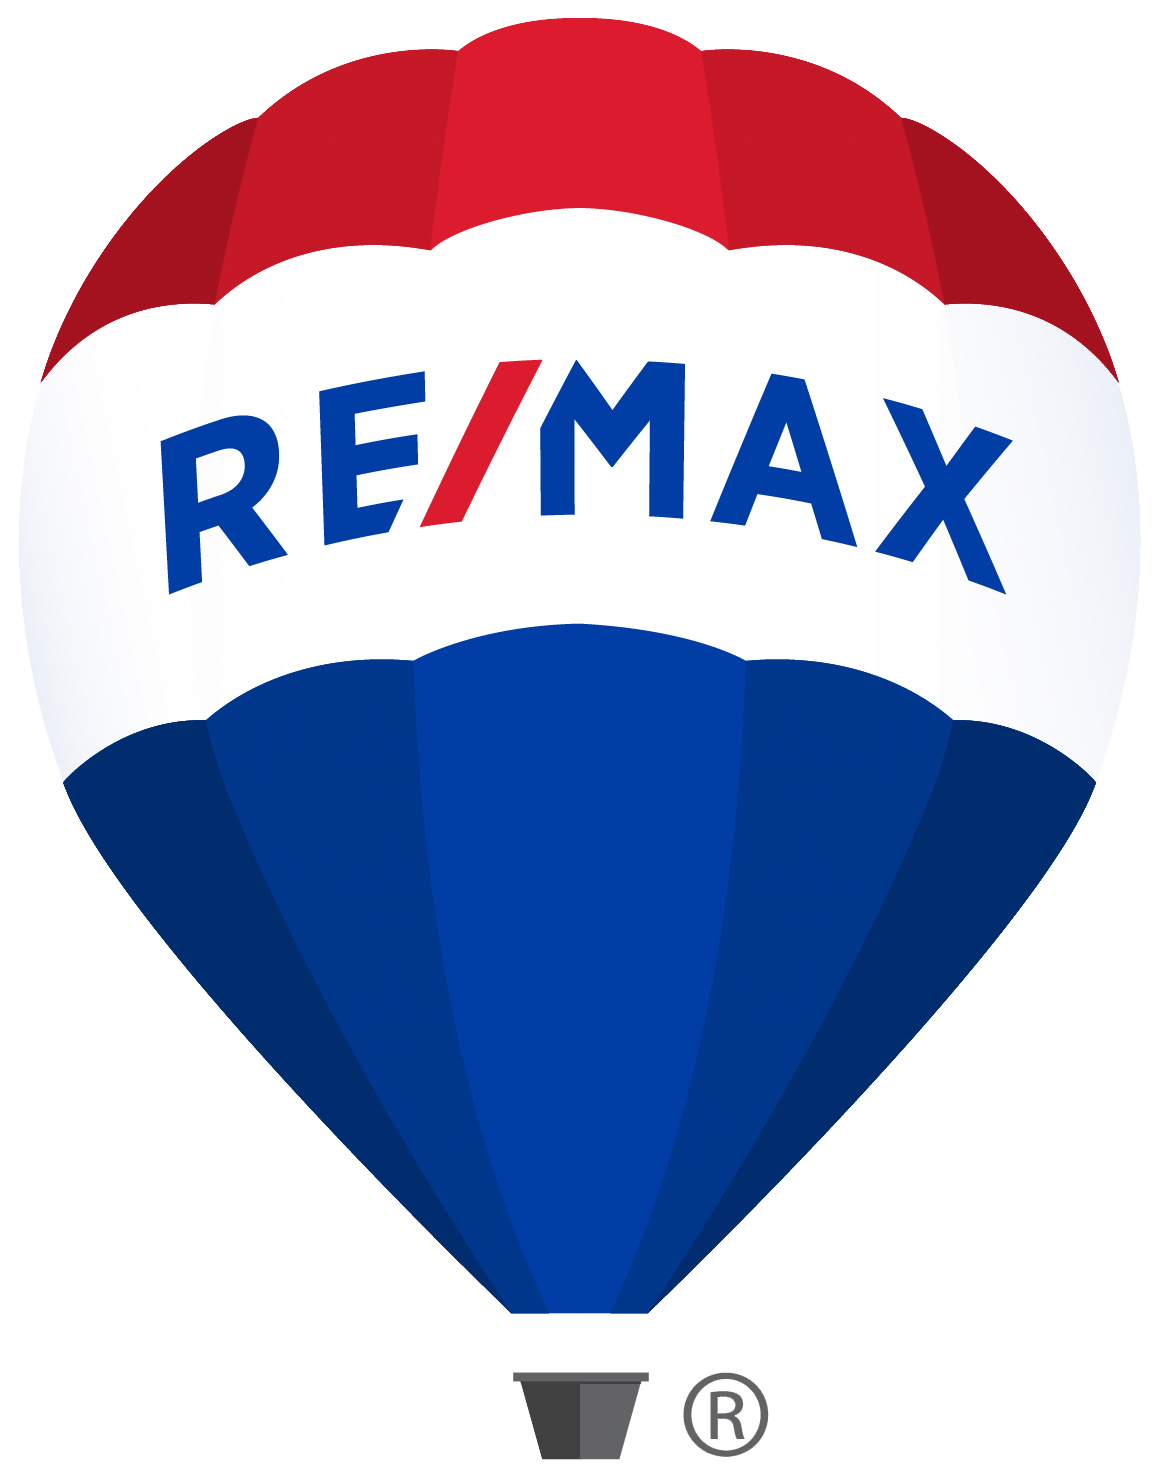 REMAX logo linking to company site